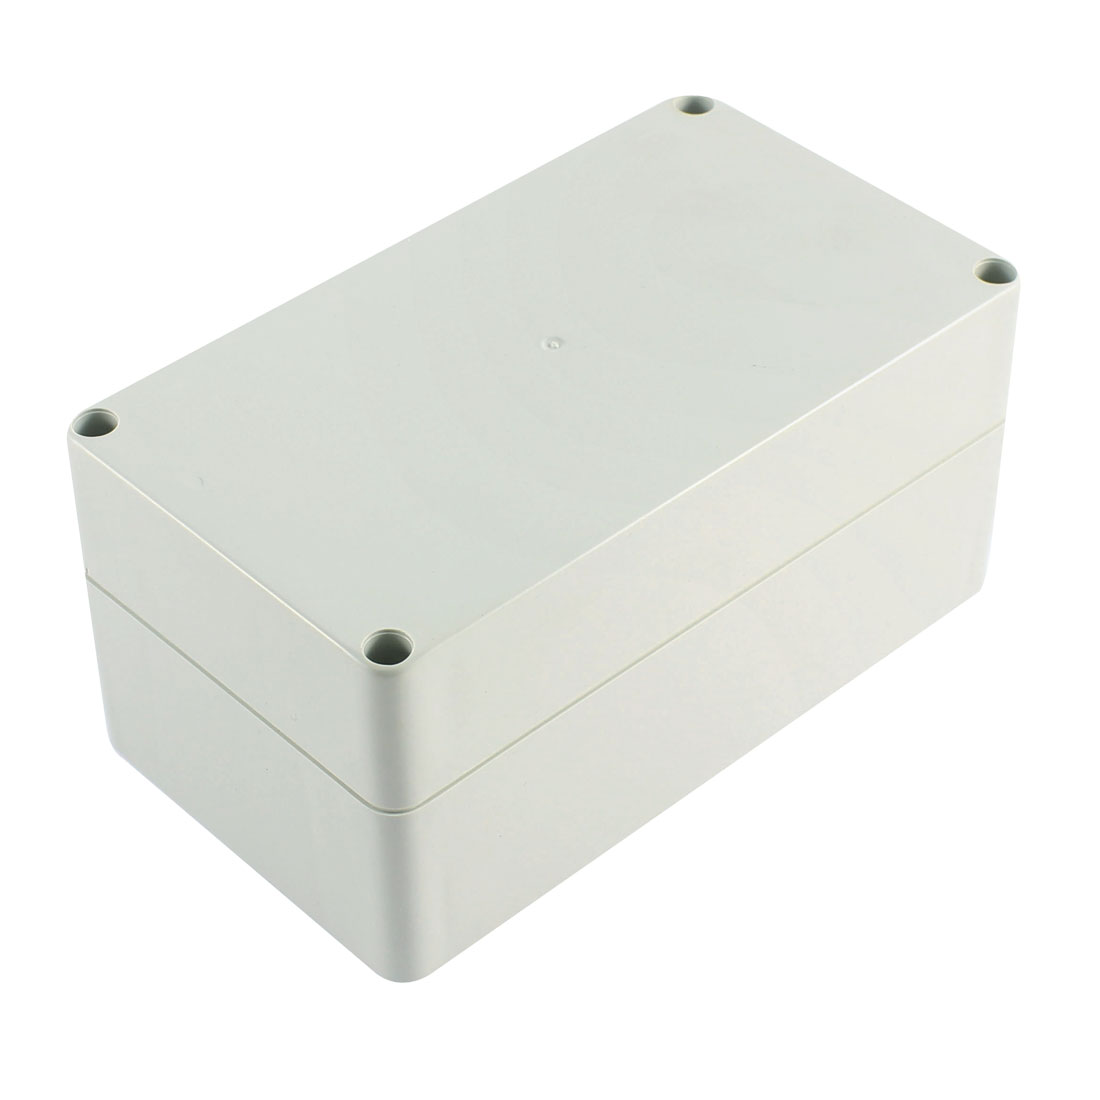 Dustproof IP65 Plastic Electronic Project Junction Box Enclosure Case 156 x 87 x 75mm